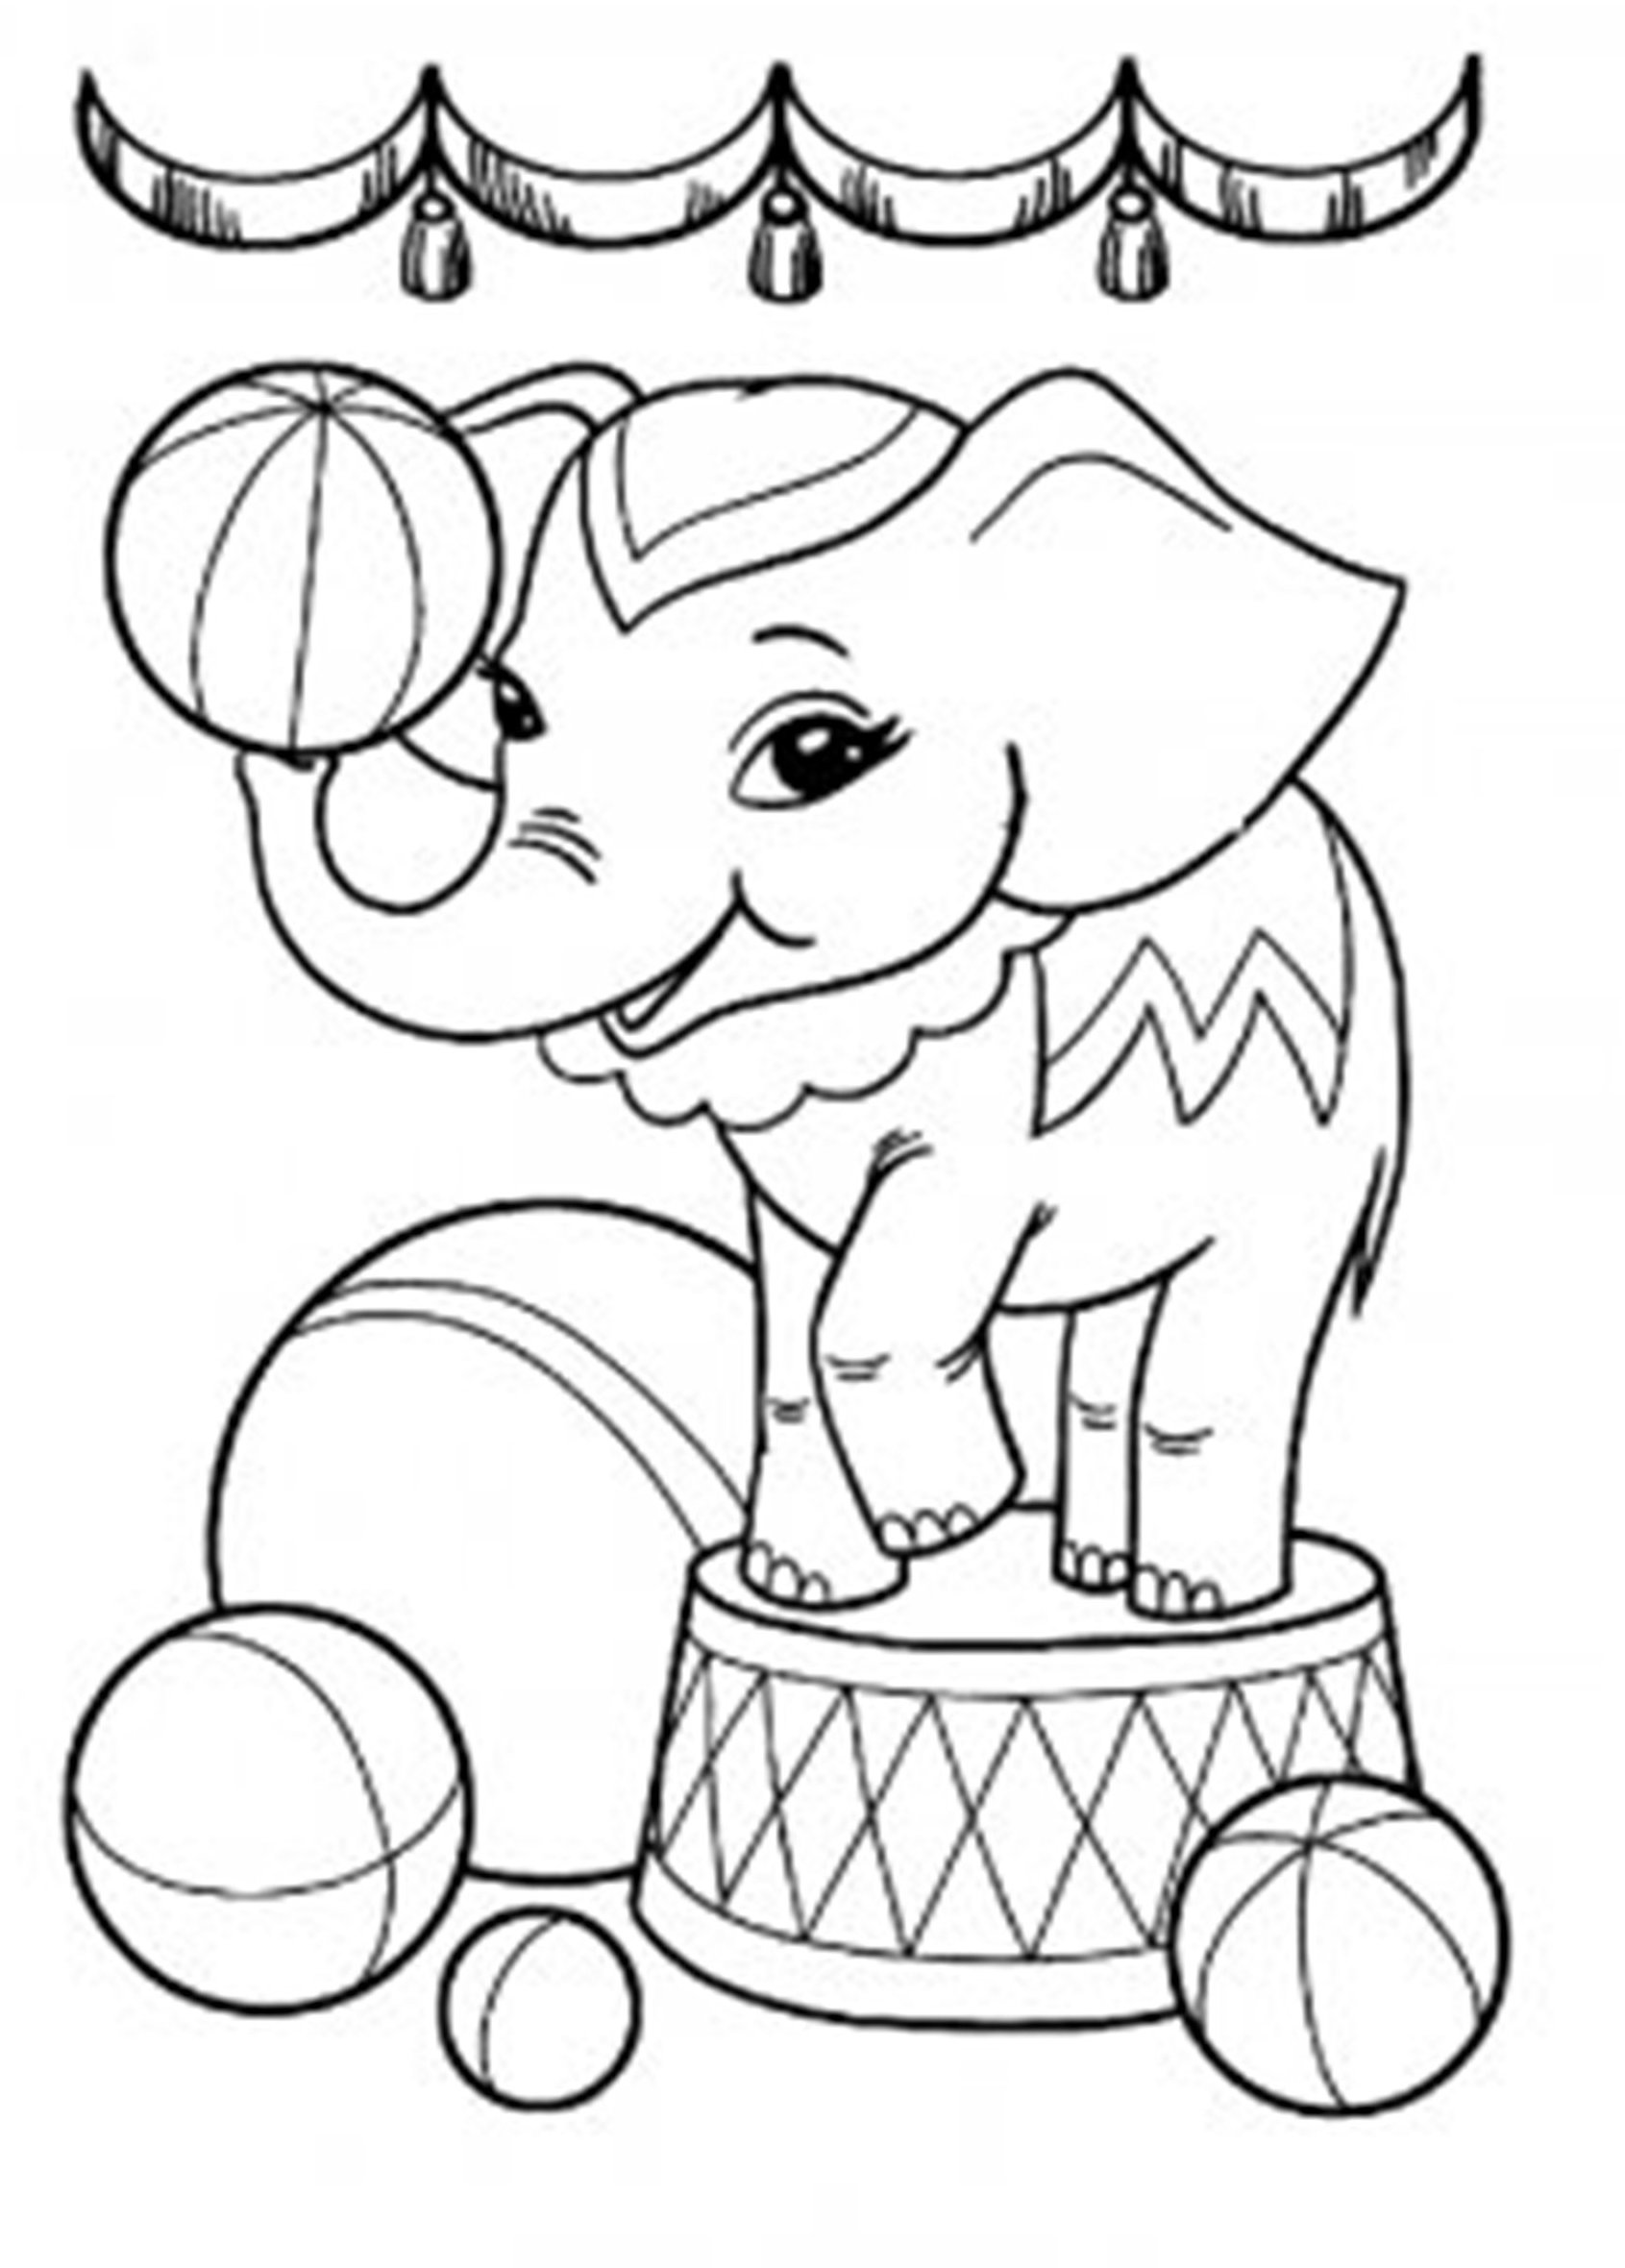 coloring images for kids frozens olaf coloring pages best coloring pages for kids kids coloring for images